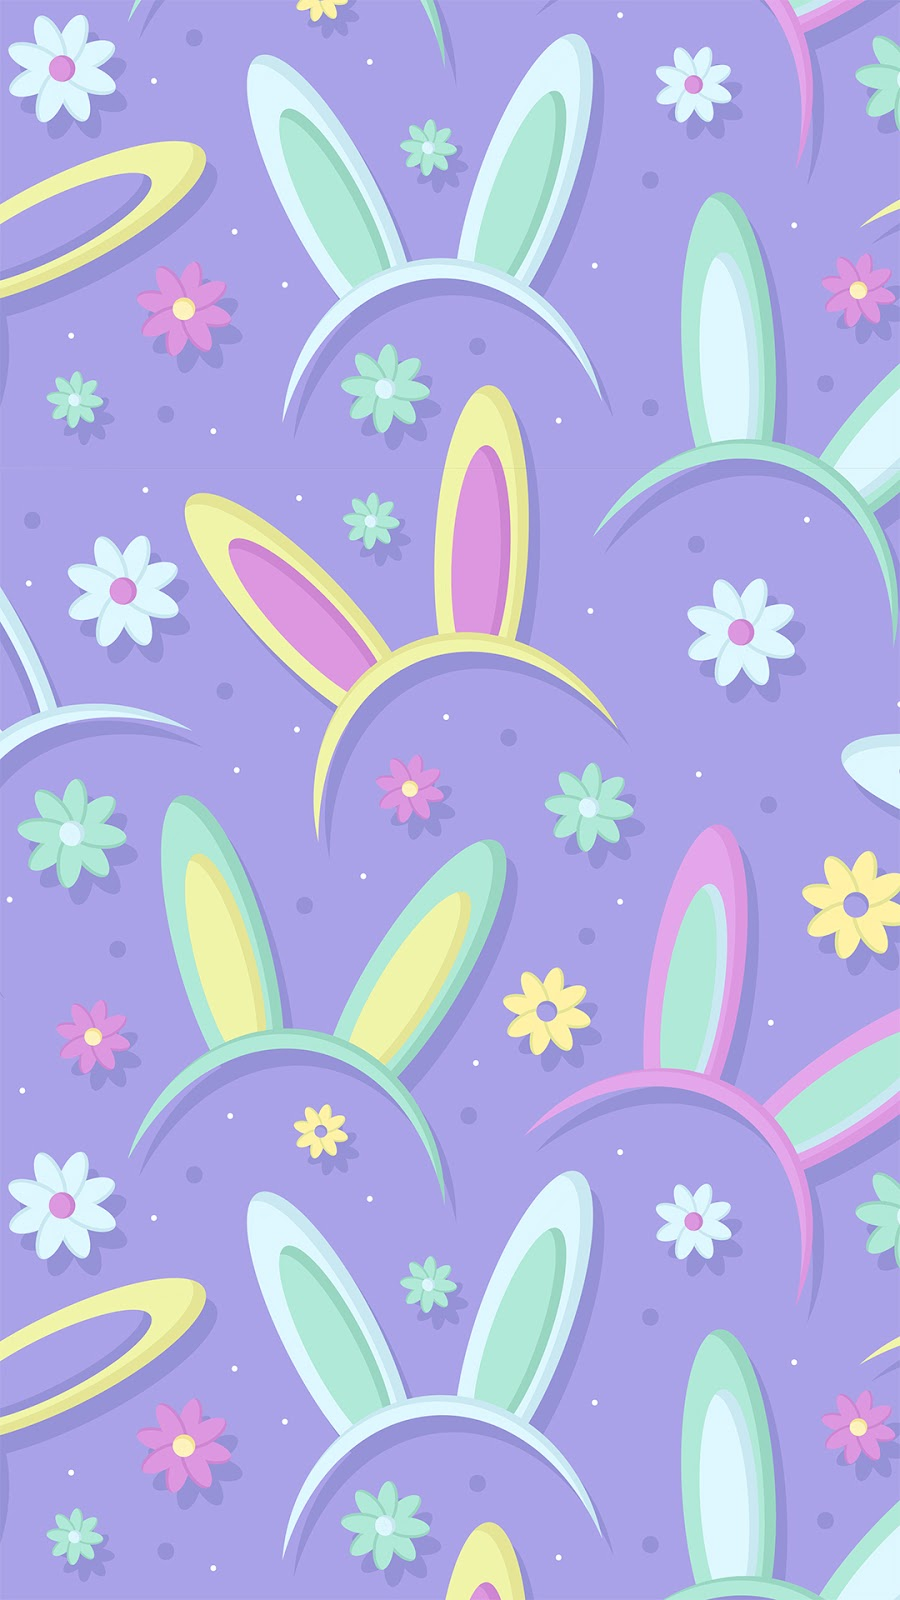 easter bunny pattern wallpaper in 1080 x 1920 pixels for phone